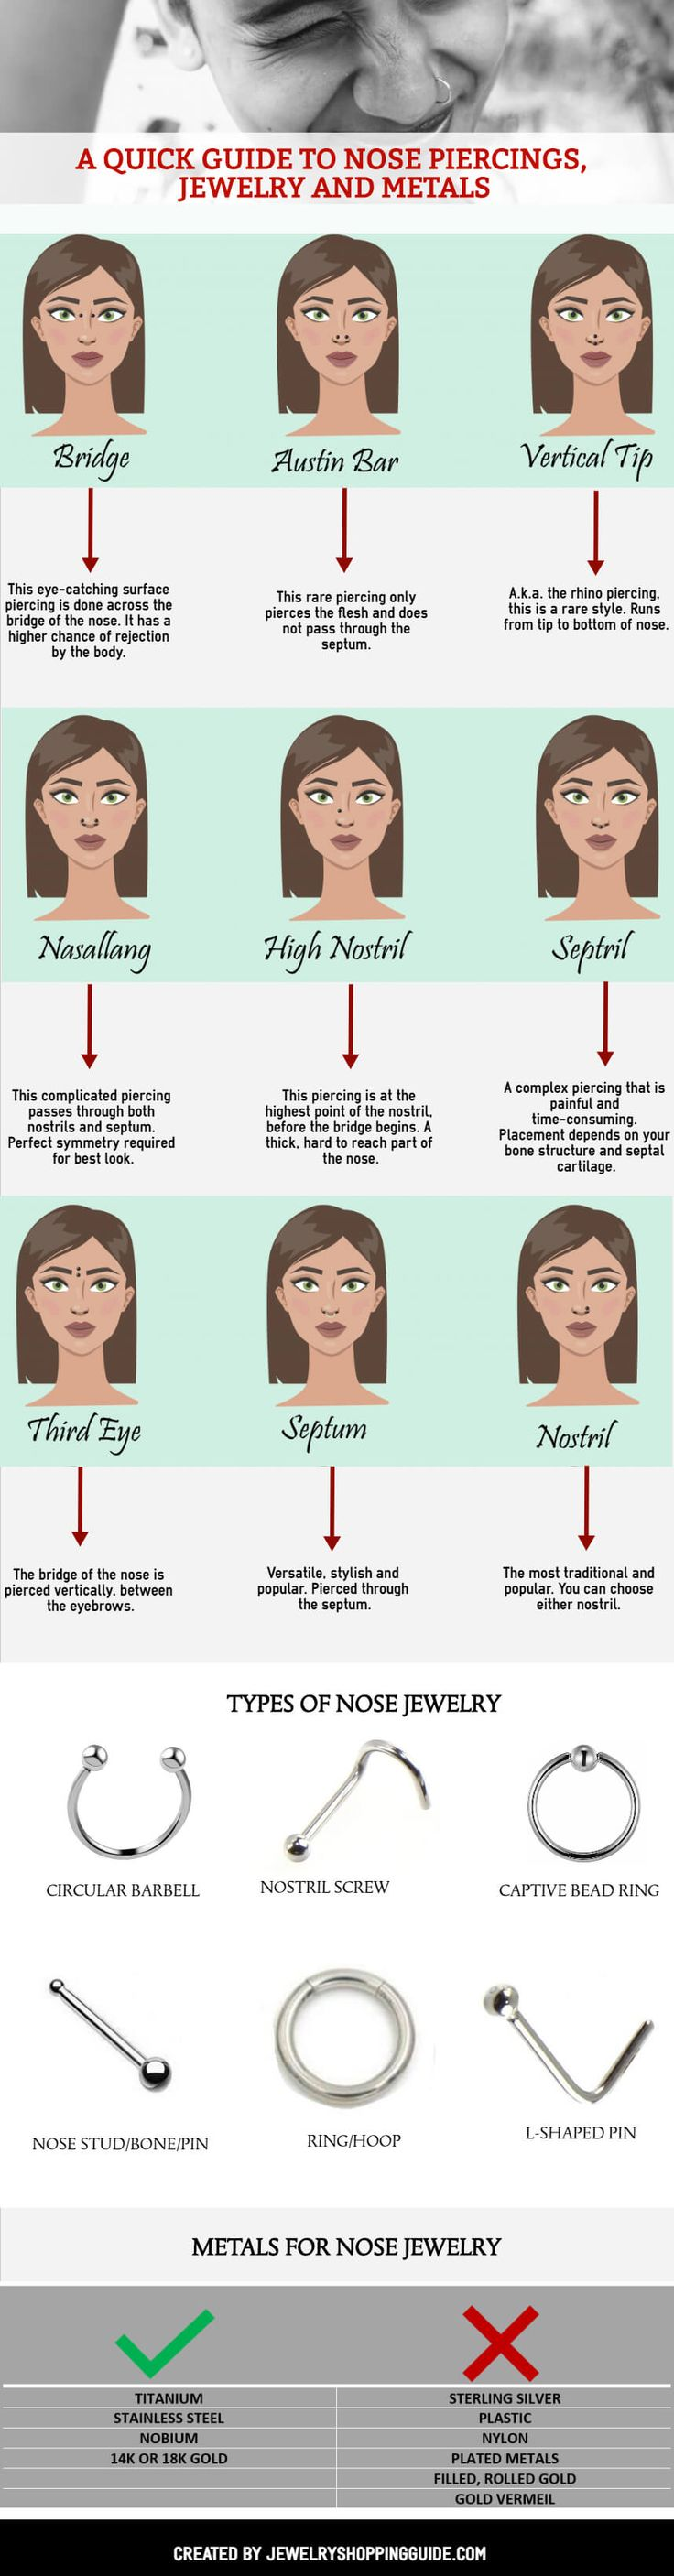 Want to get a nose ring? Here's what you need to know ...